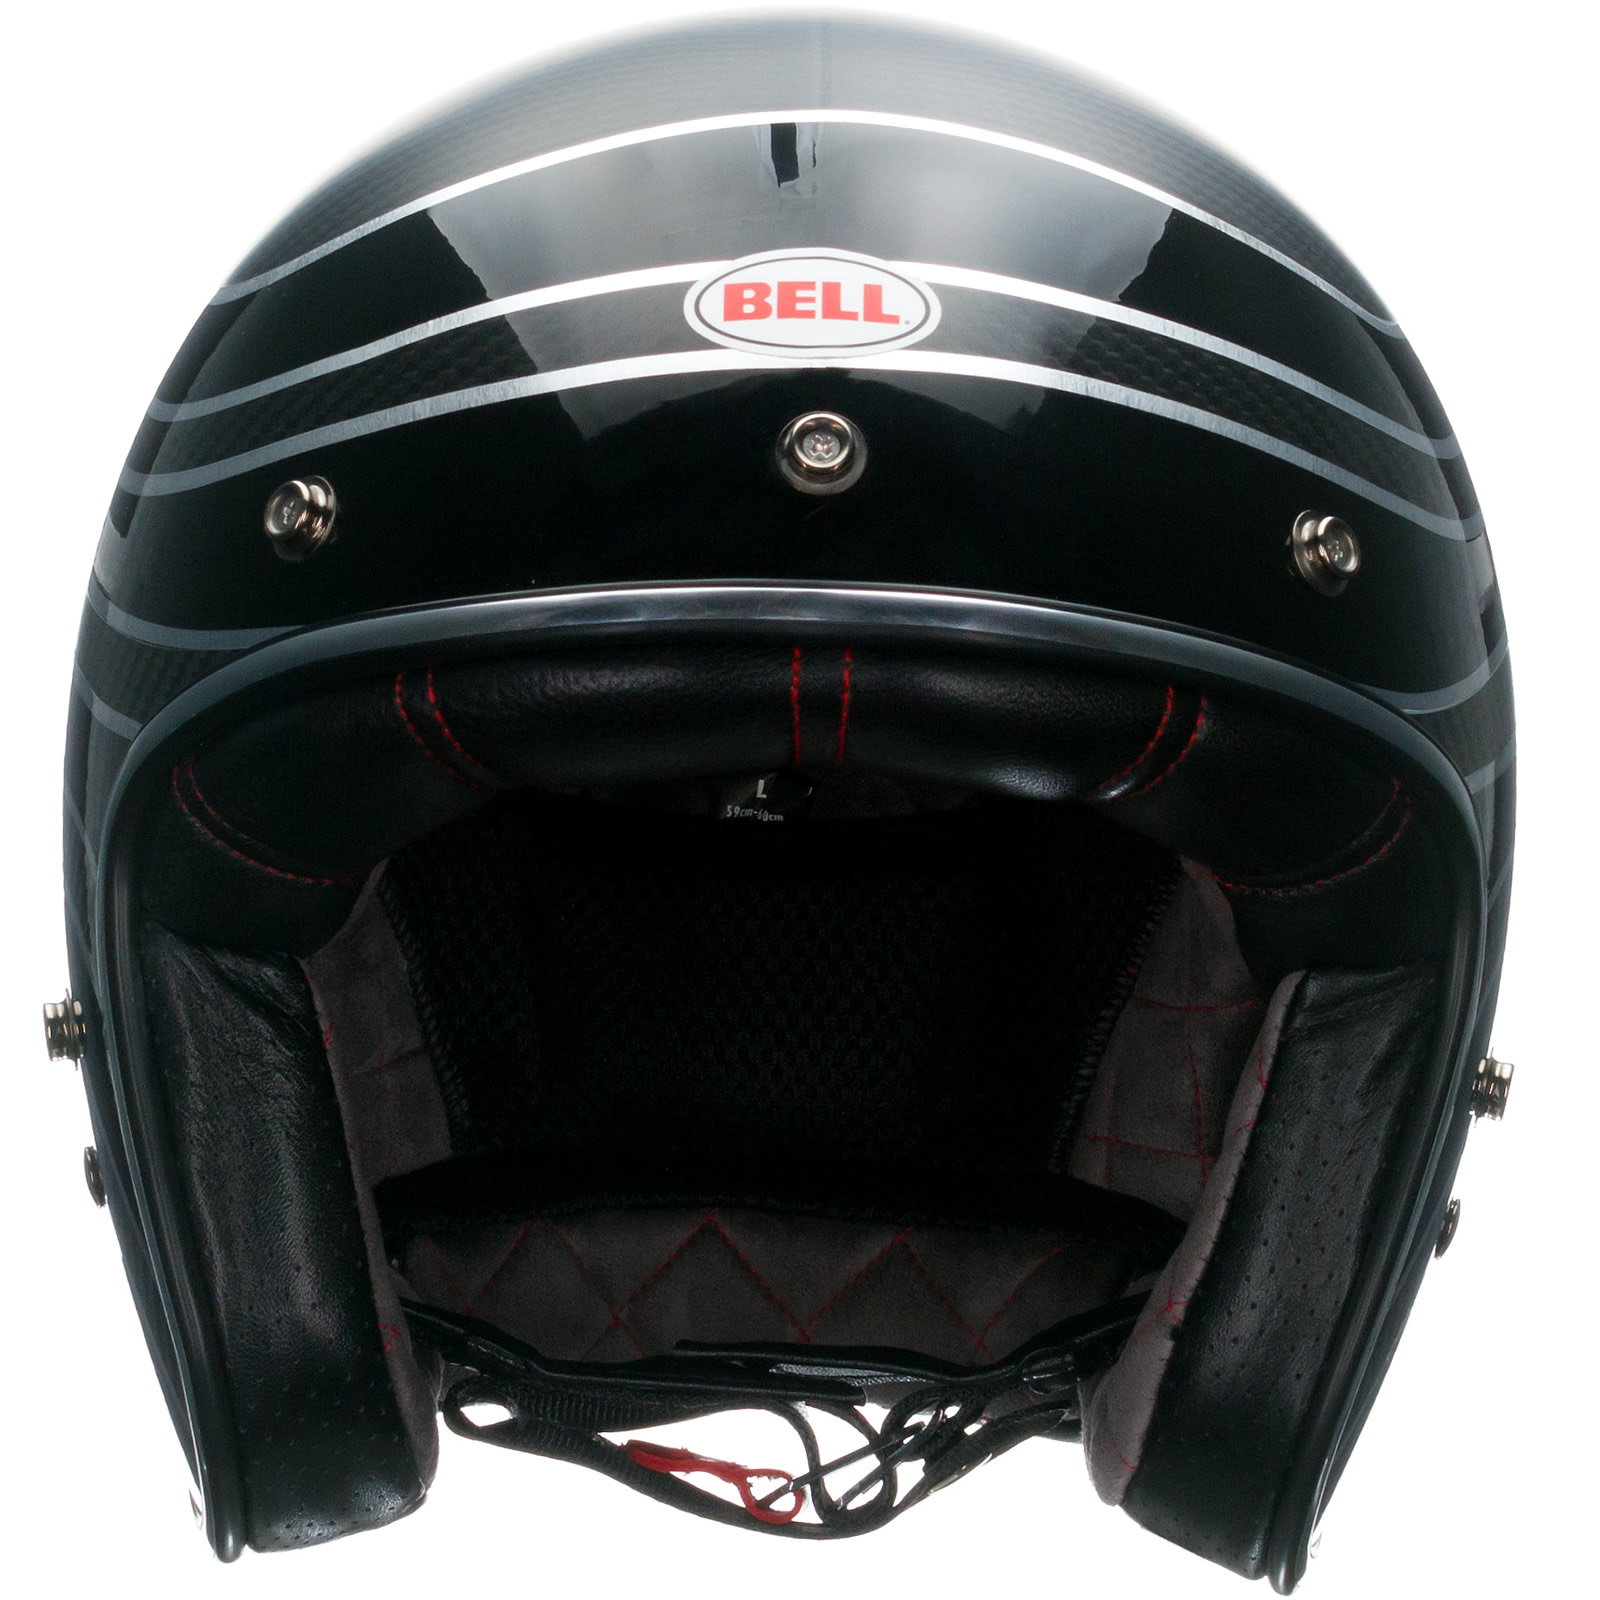 Bell custom 500 gloss black vintage low profile helmet chopper harley - Bell Custom 500 Carbon Rsd Talladega Helmet Amp